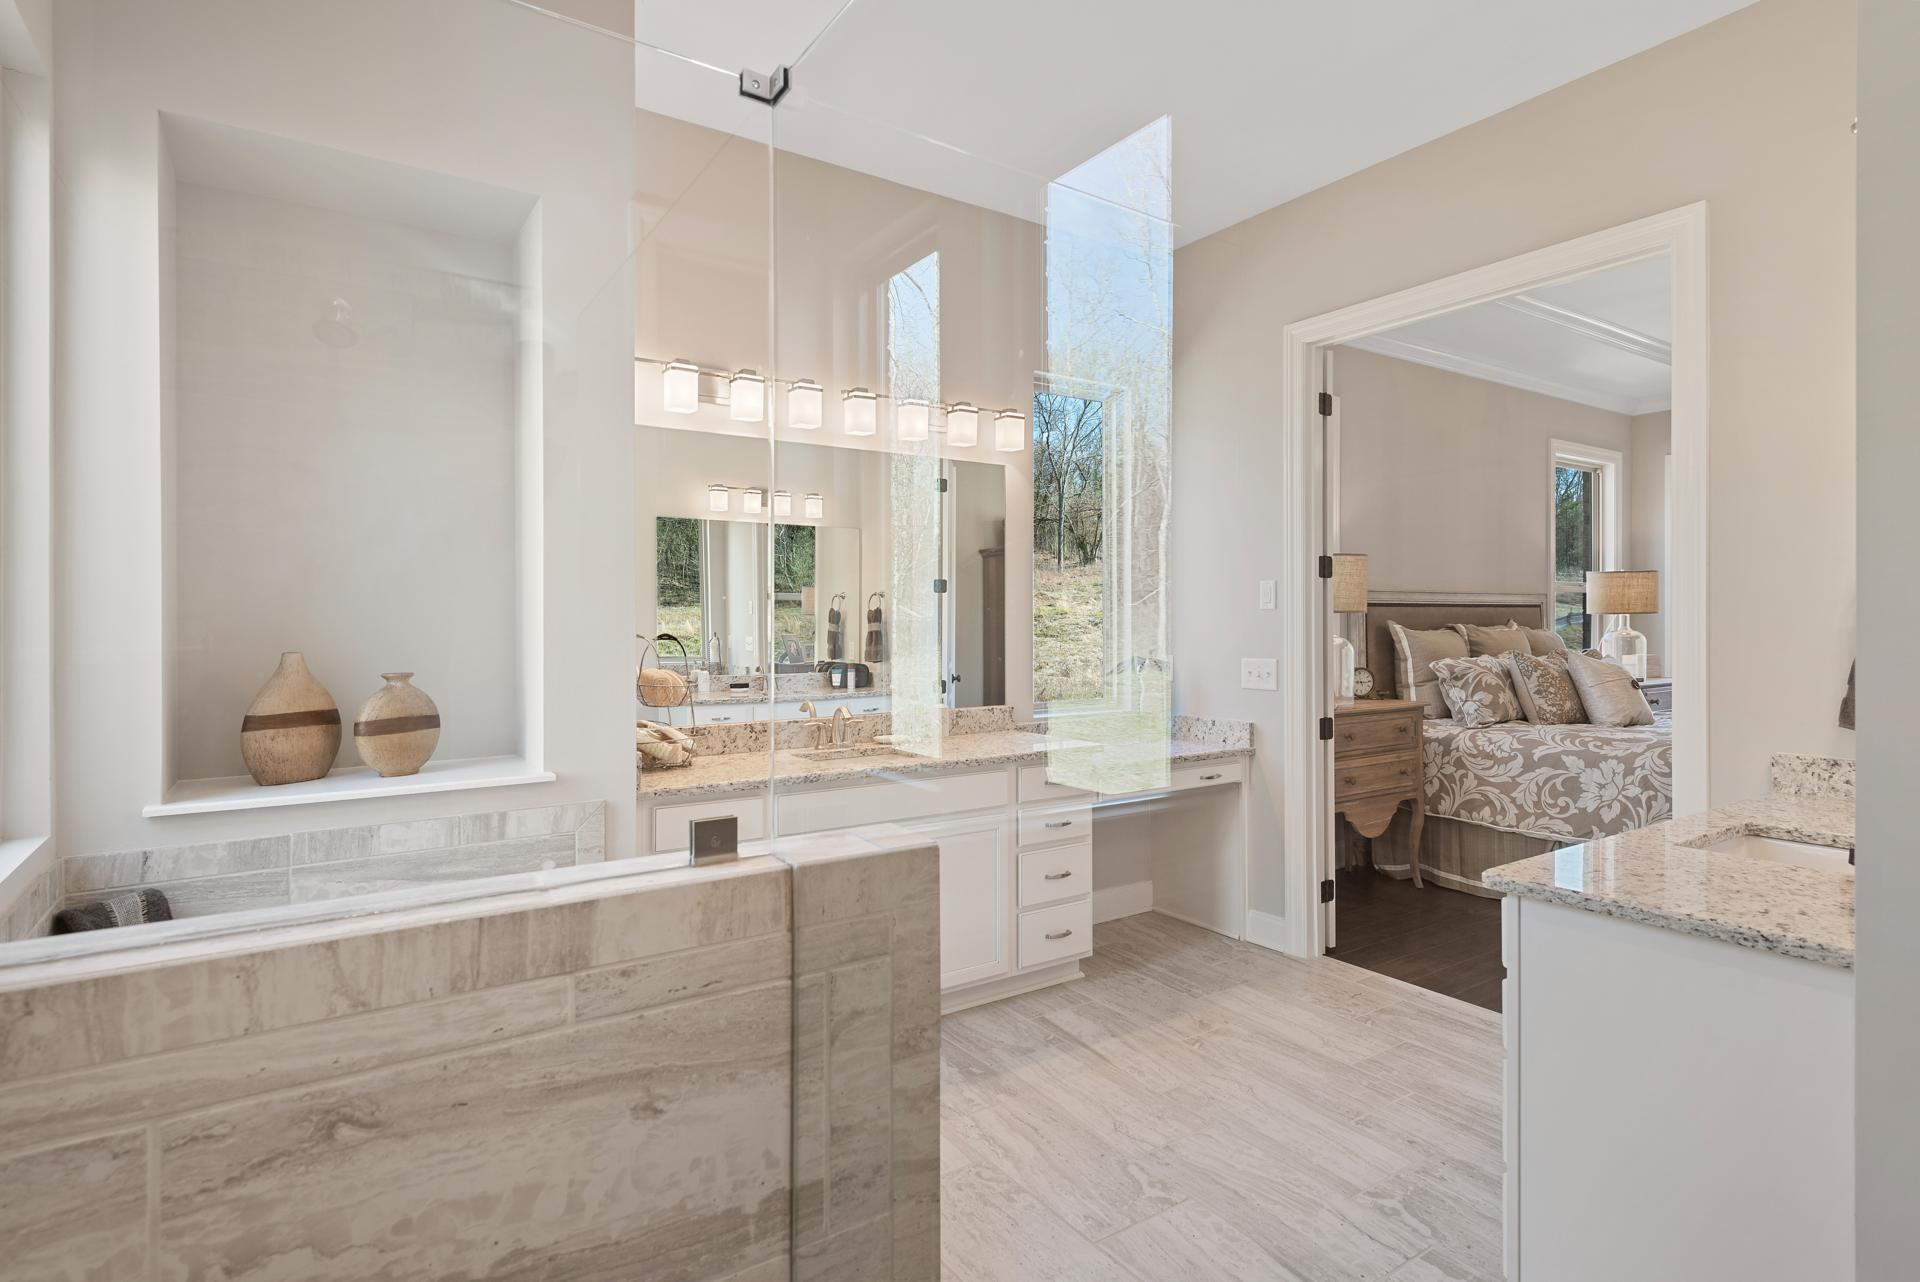 Bathroom featured in the Karey By Drees Homes in Nashville, TN